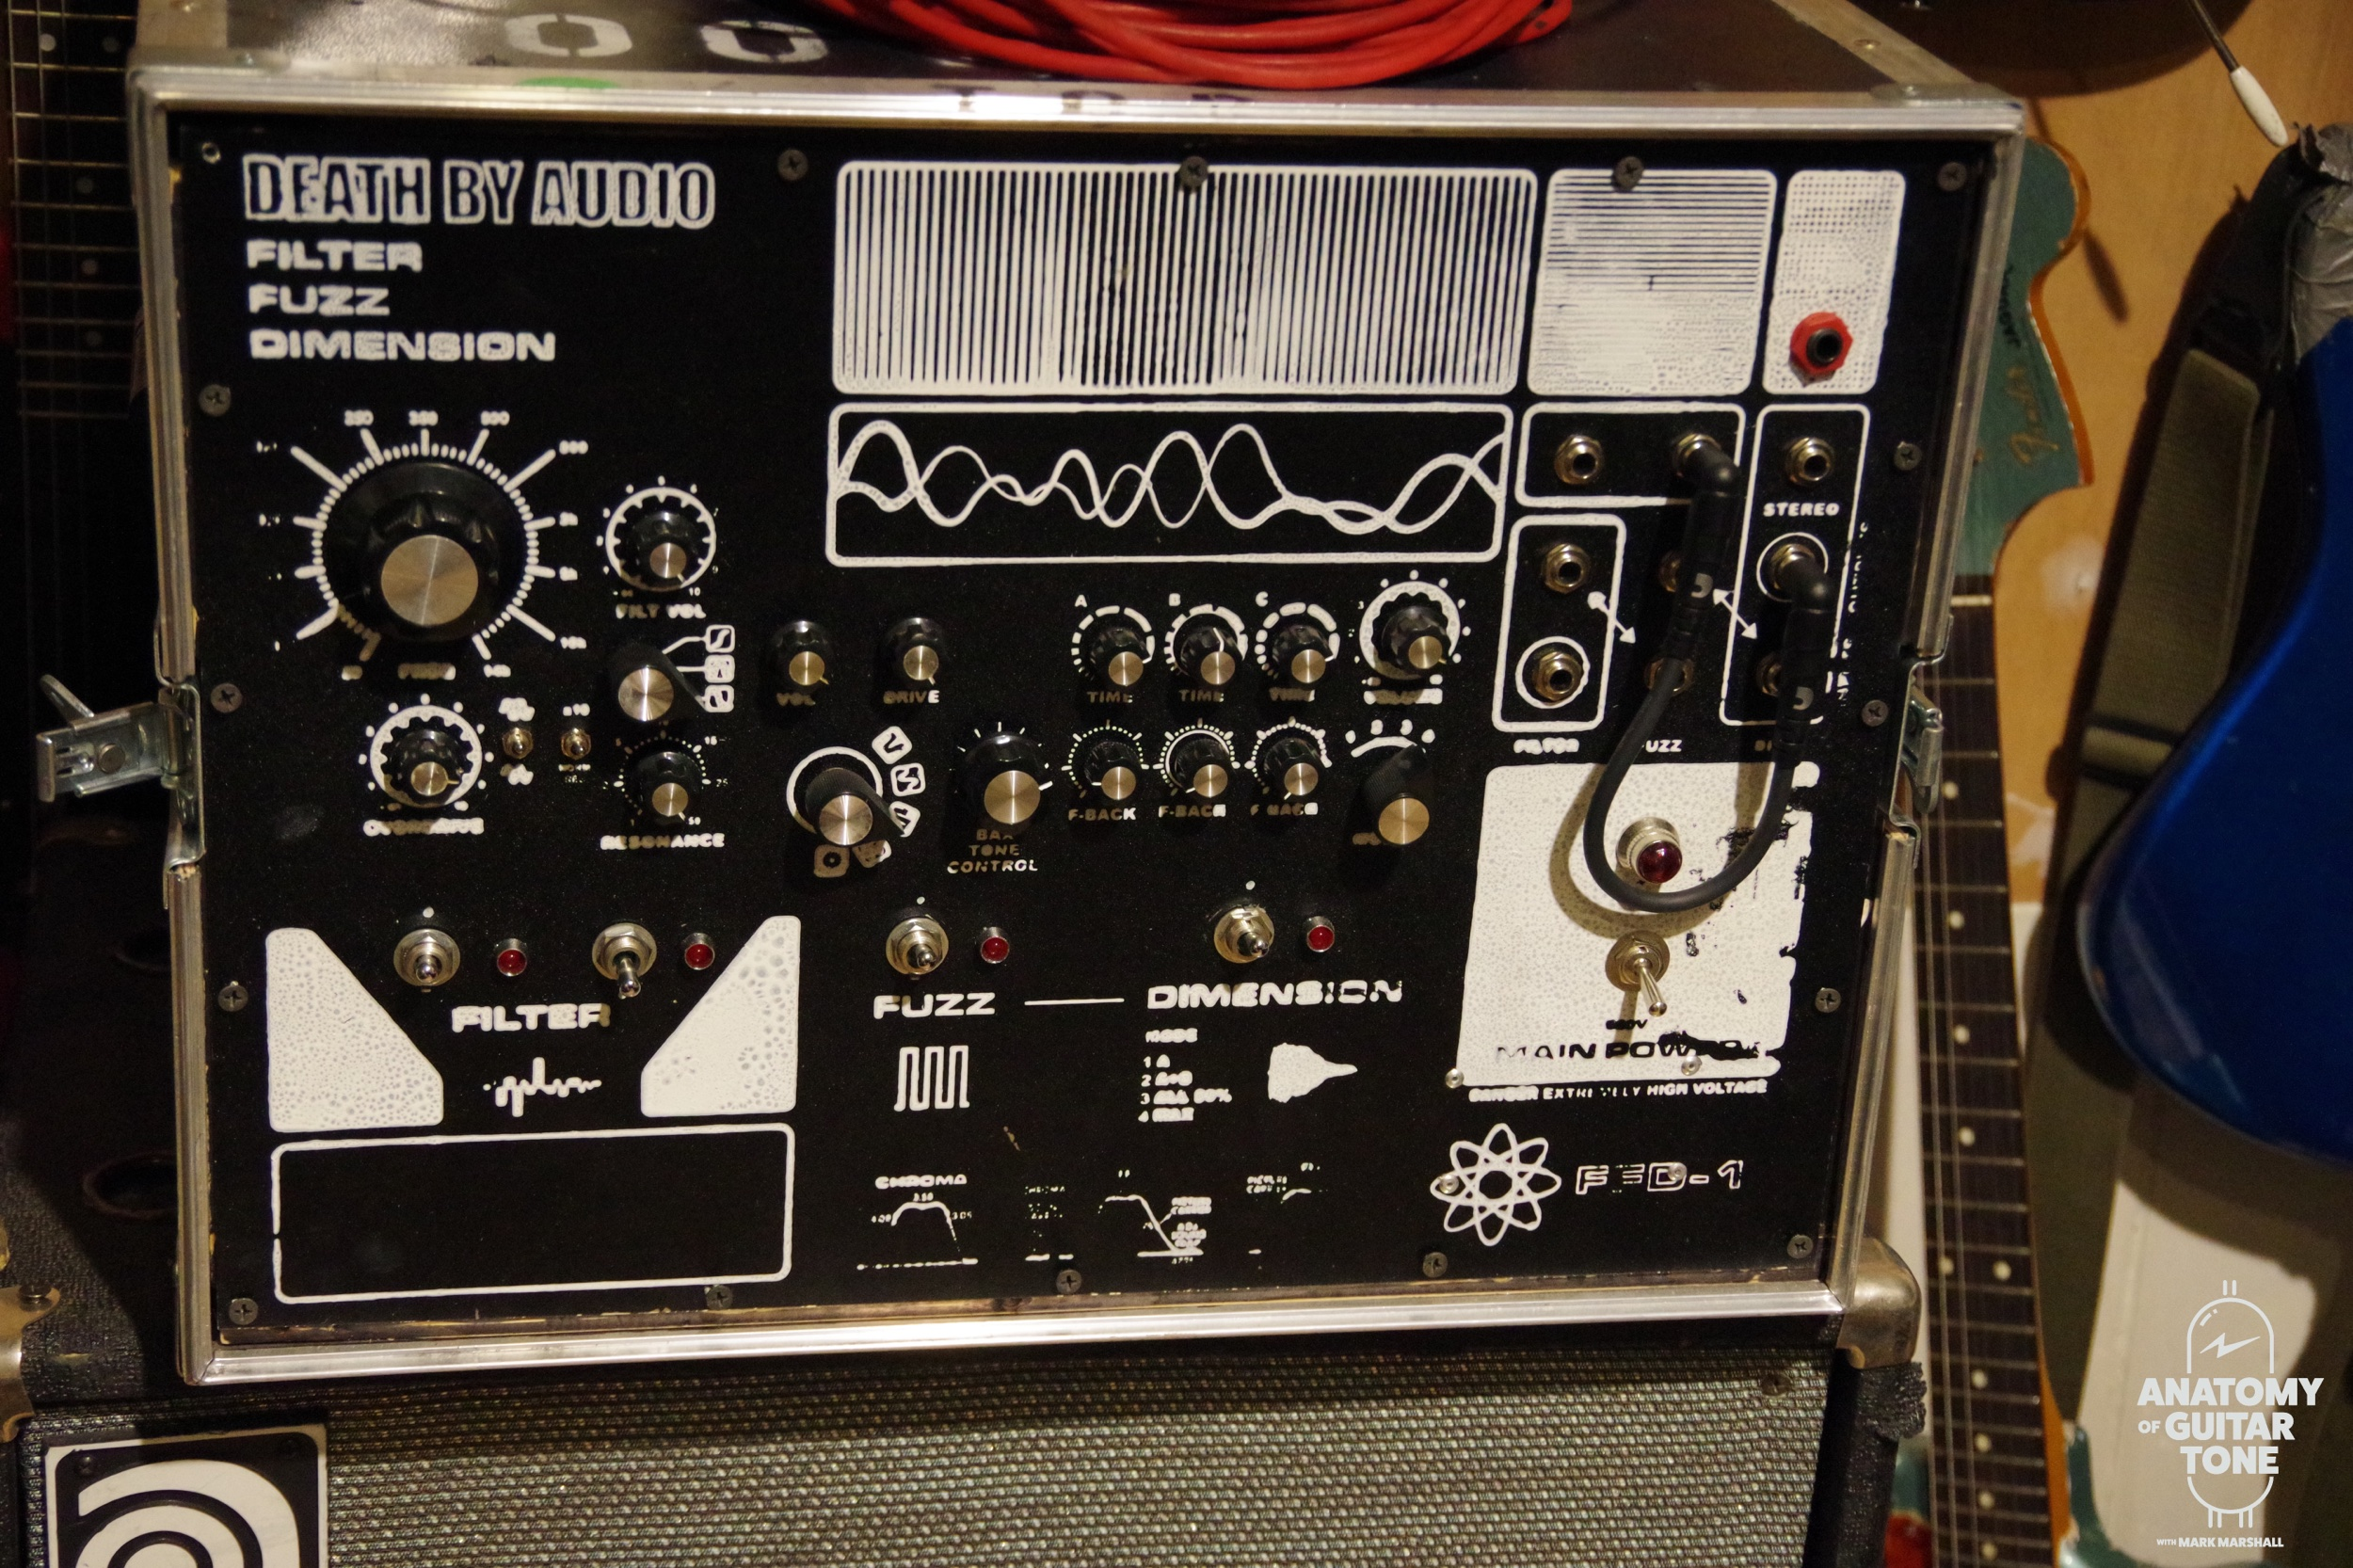 Death by Audio one of. A kind